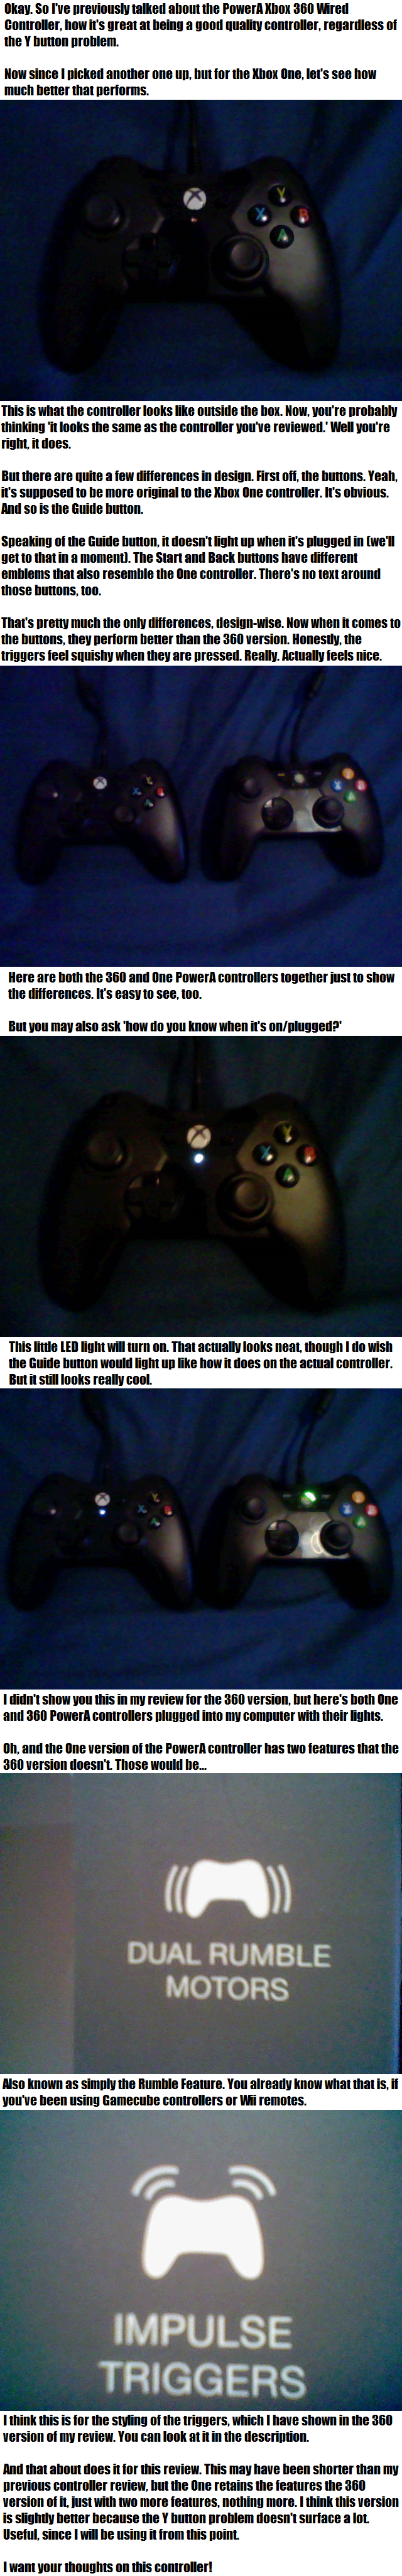 PowerA Xbox One Controller Review by Sfrhk678 on DeviantArt